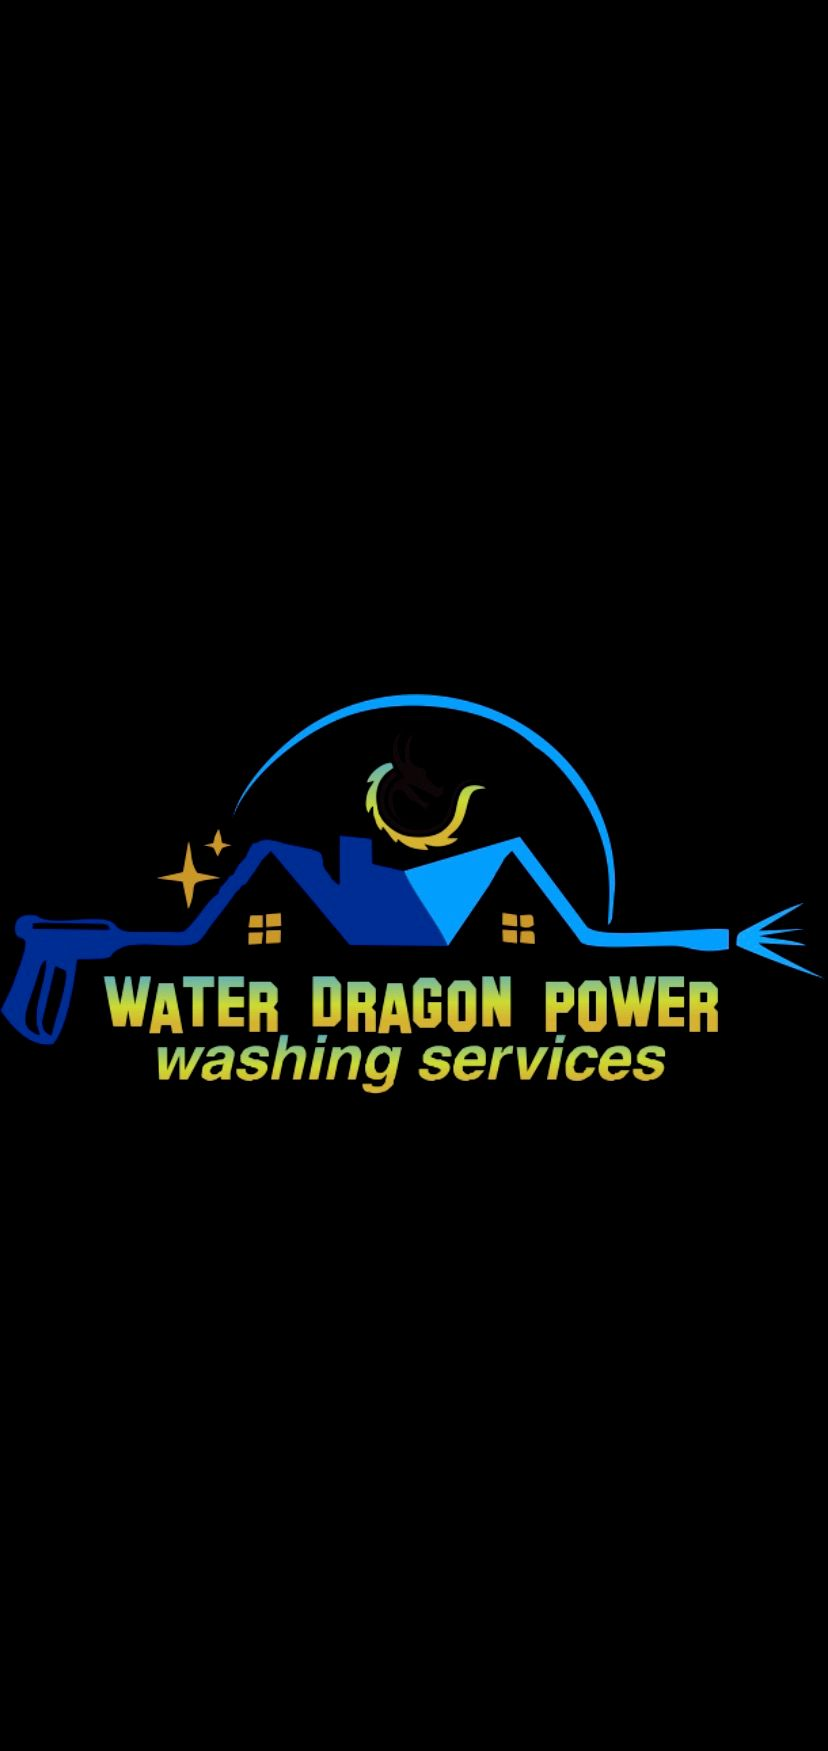 Water Dragon Power Washing Services